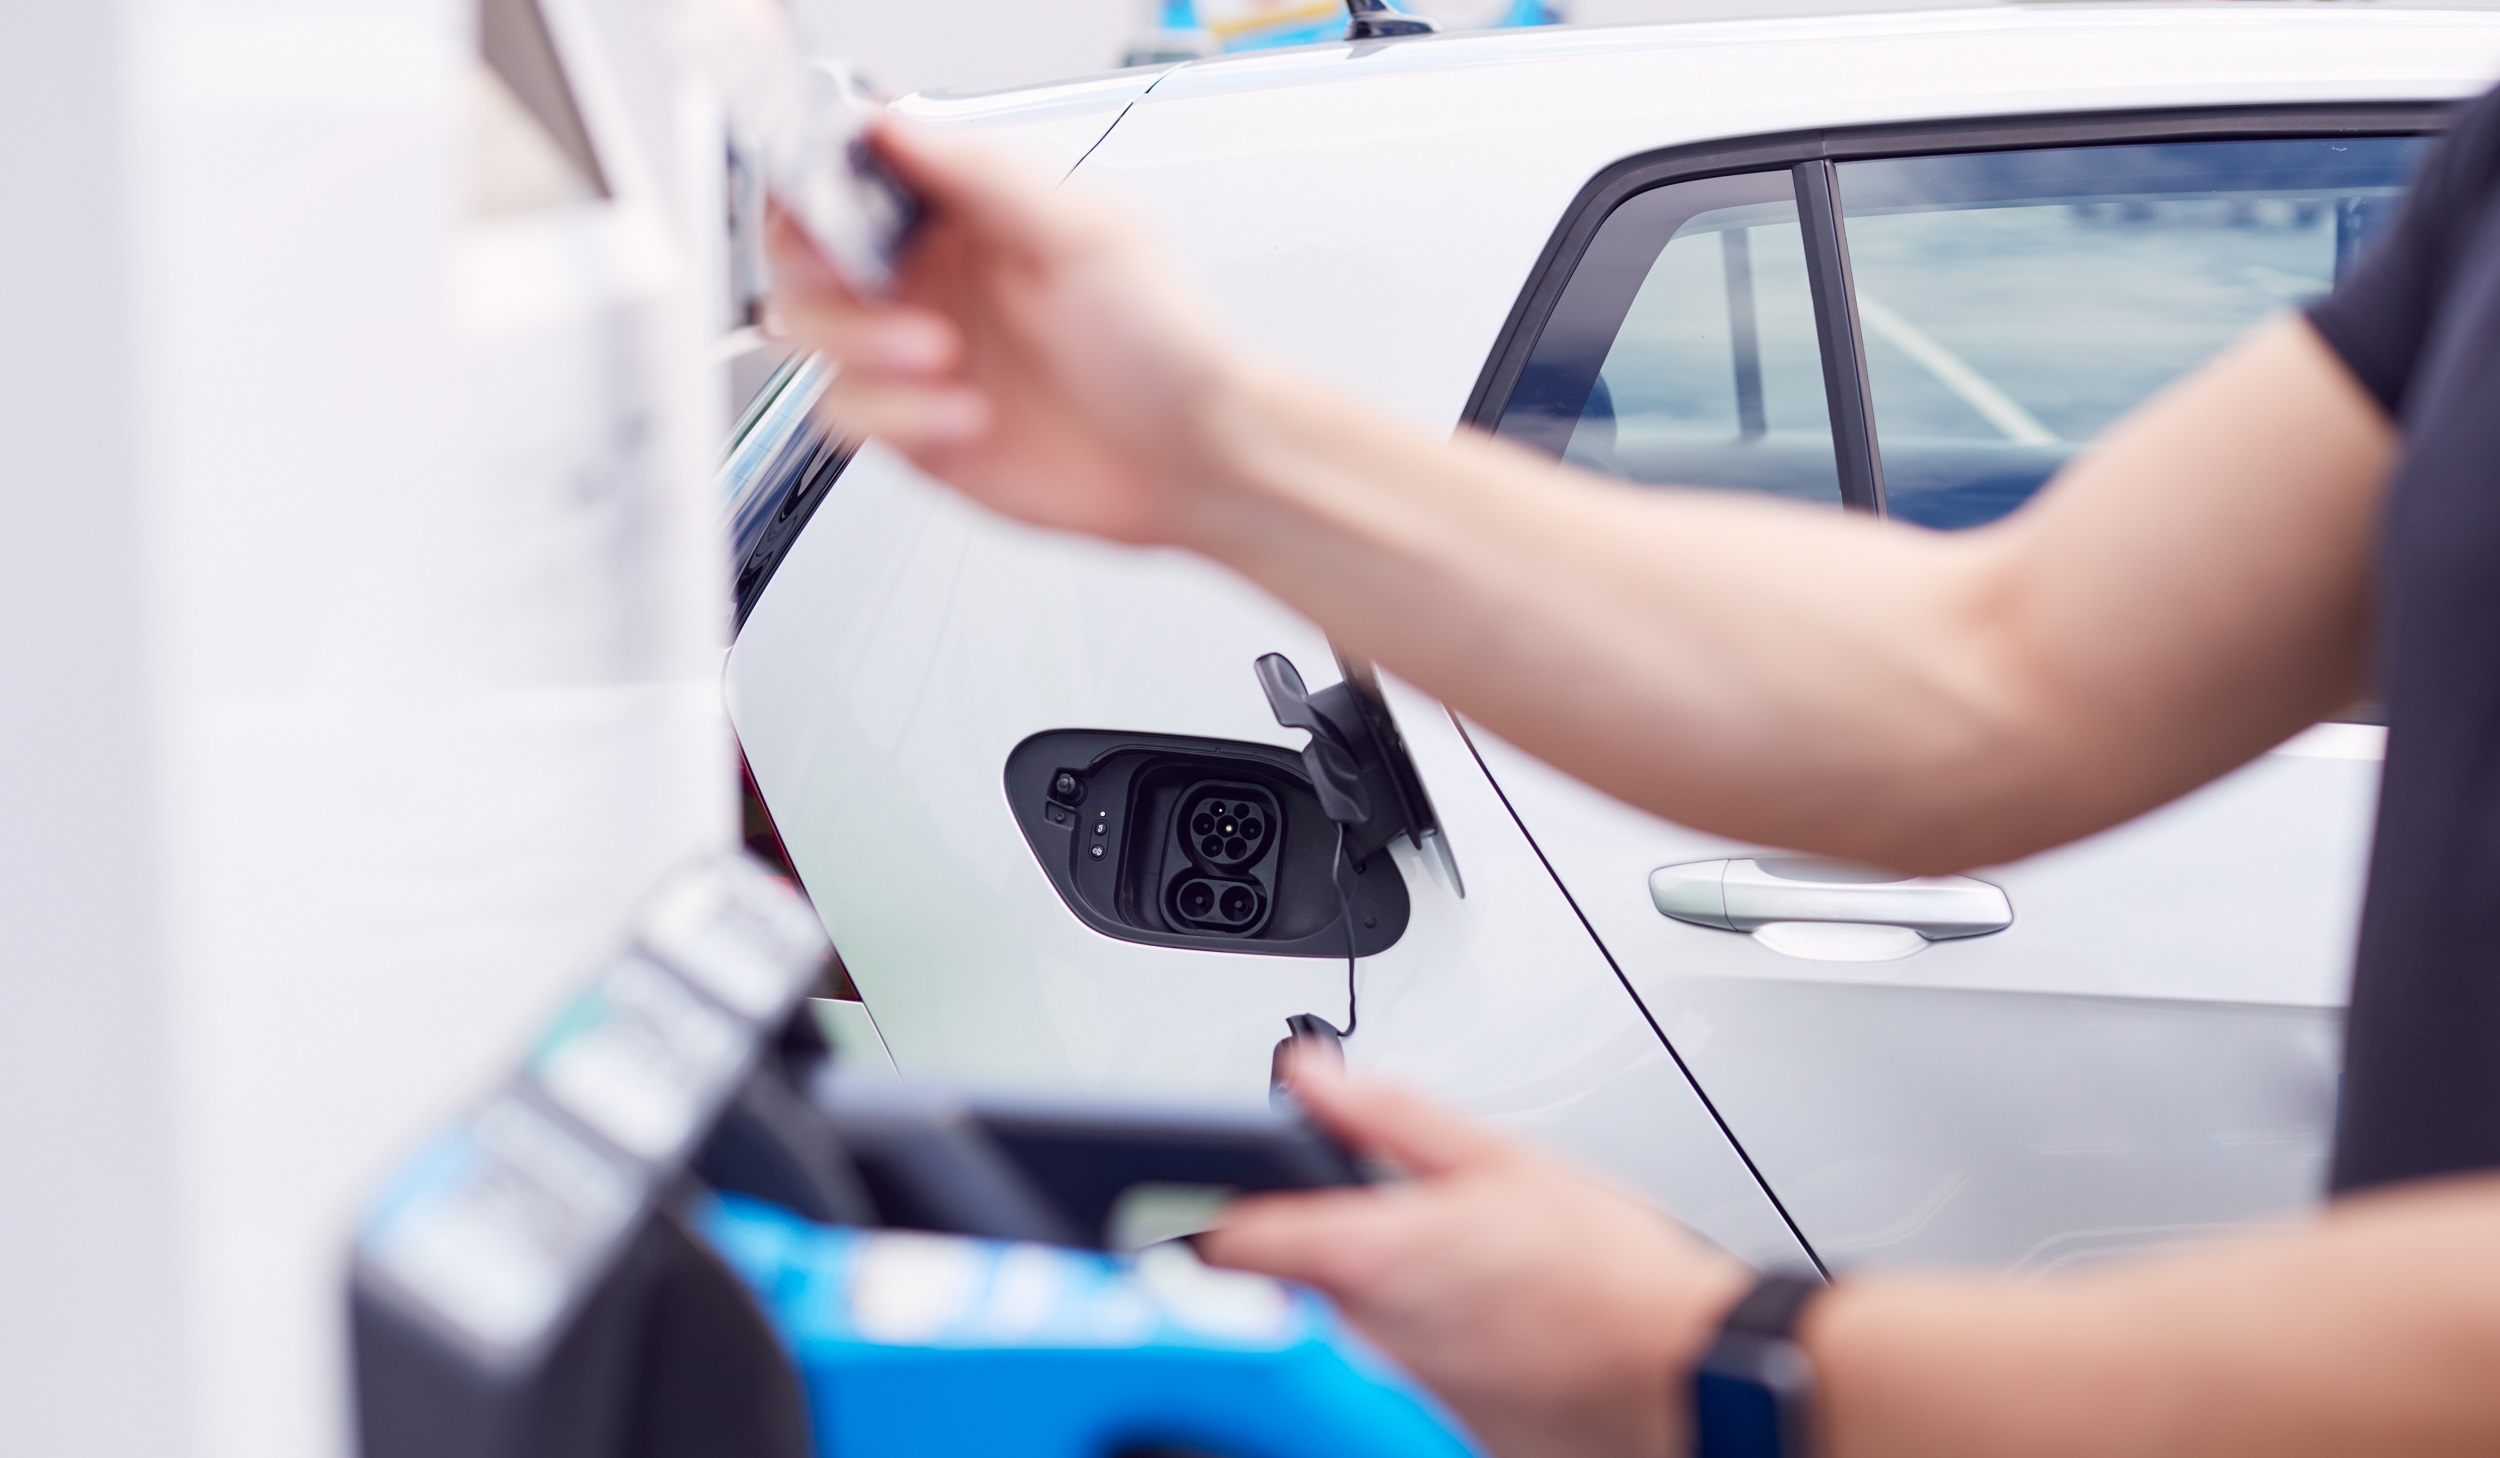 Man Charging Electric Vehicle Paying For Energy With Credit Card At Charging Station